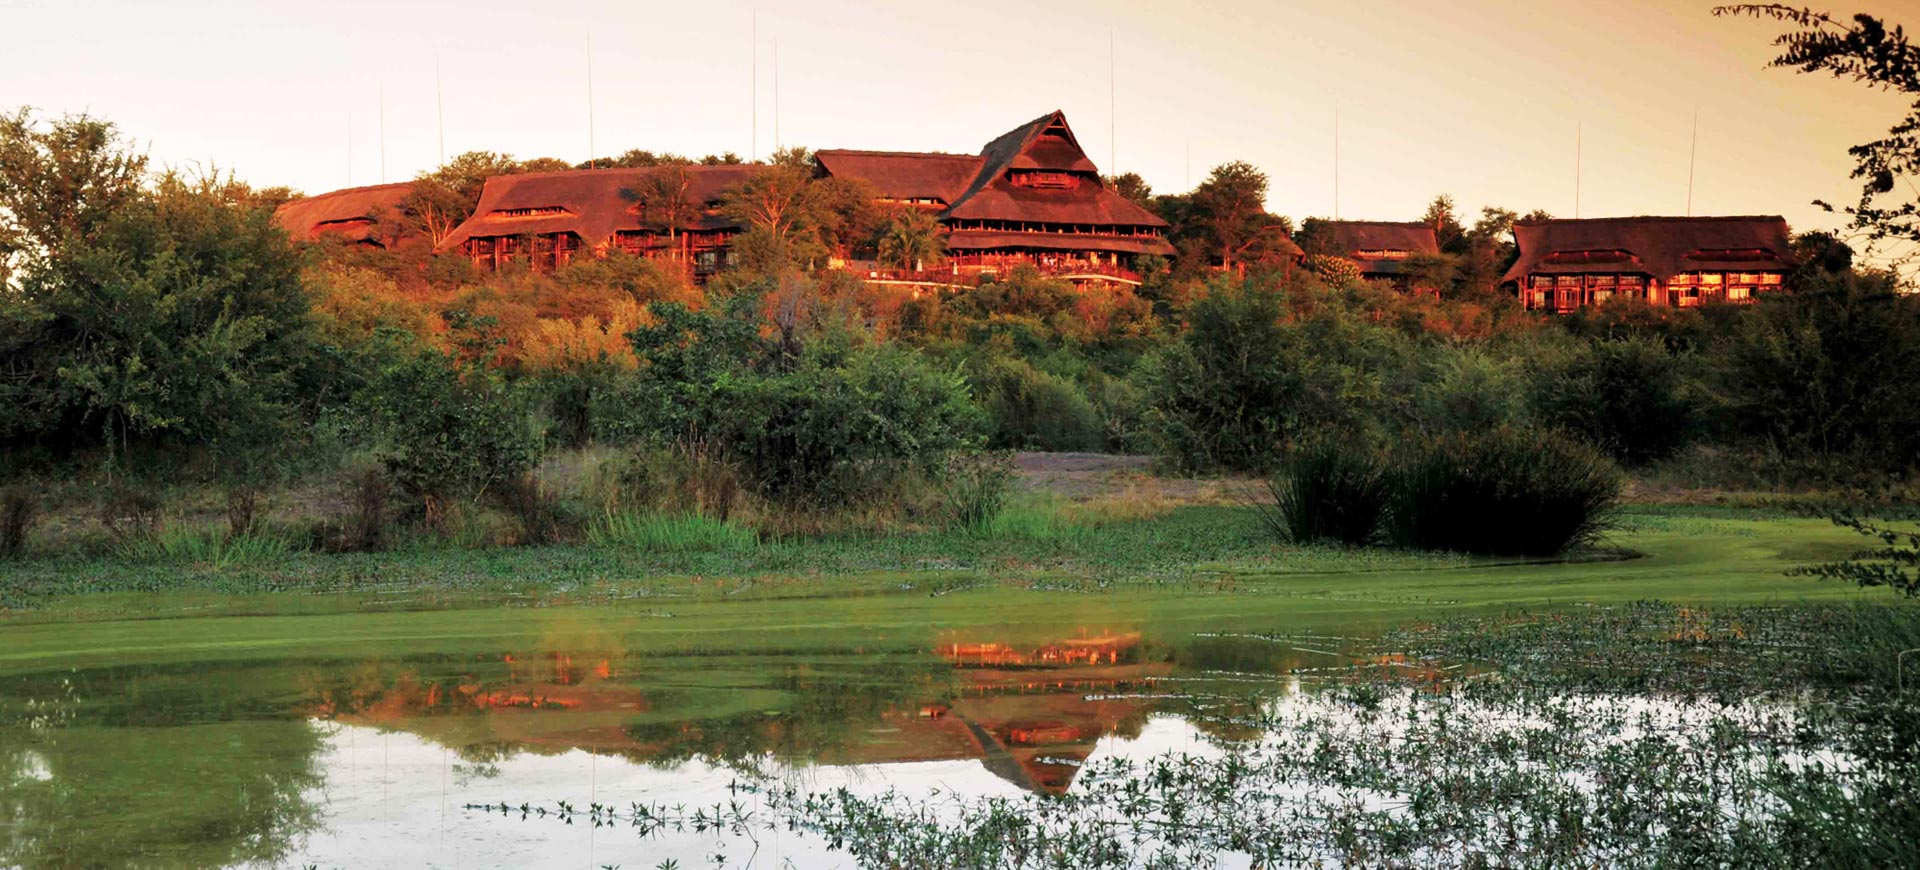 Victoria Falls Safari Lodges